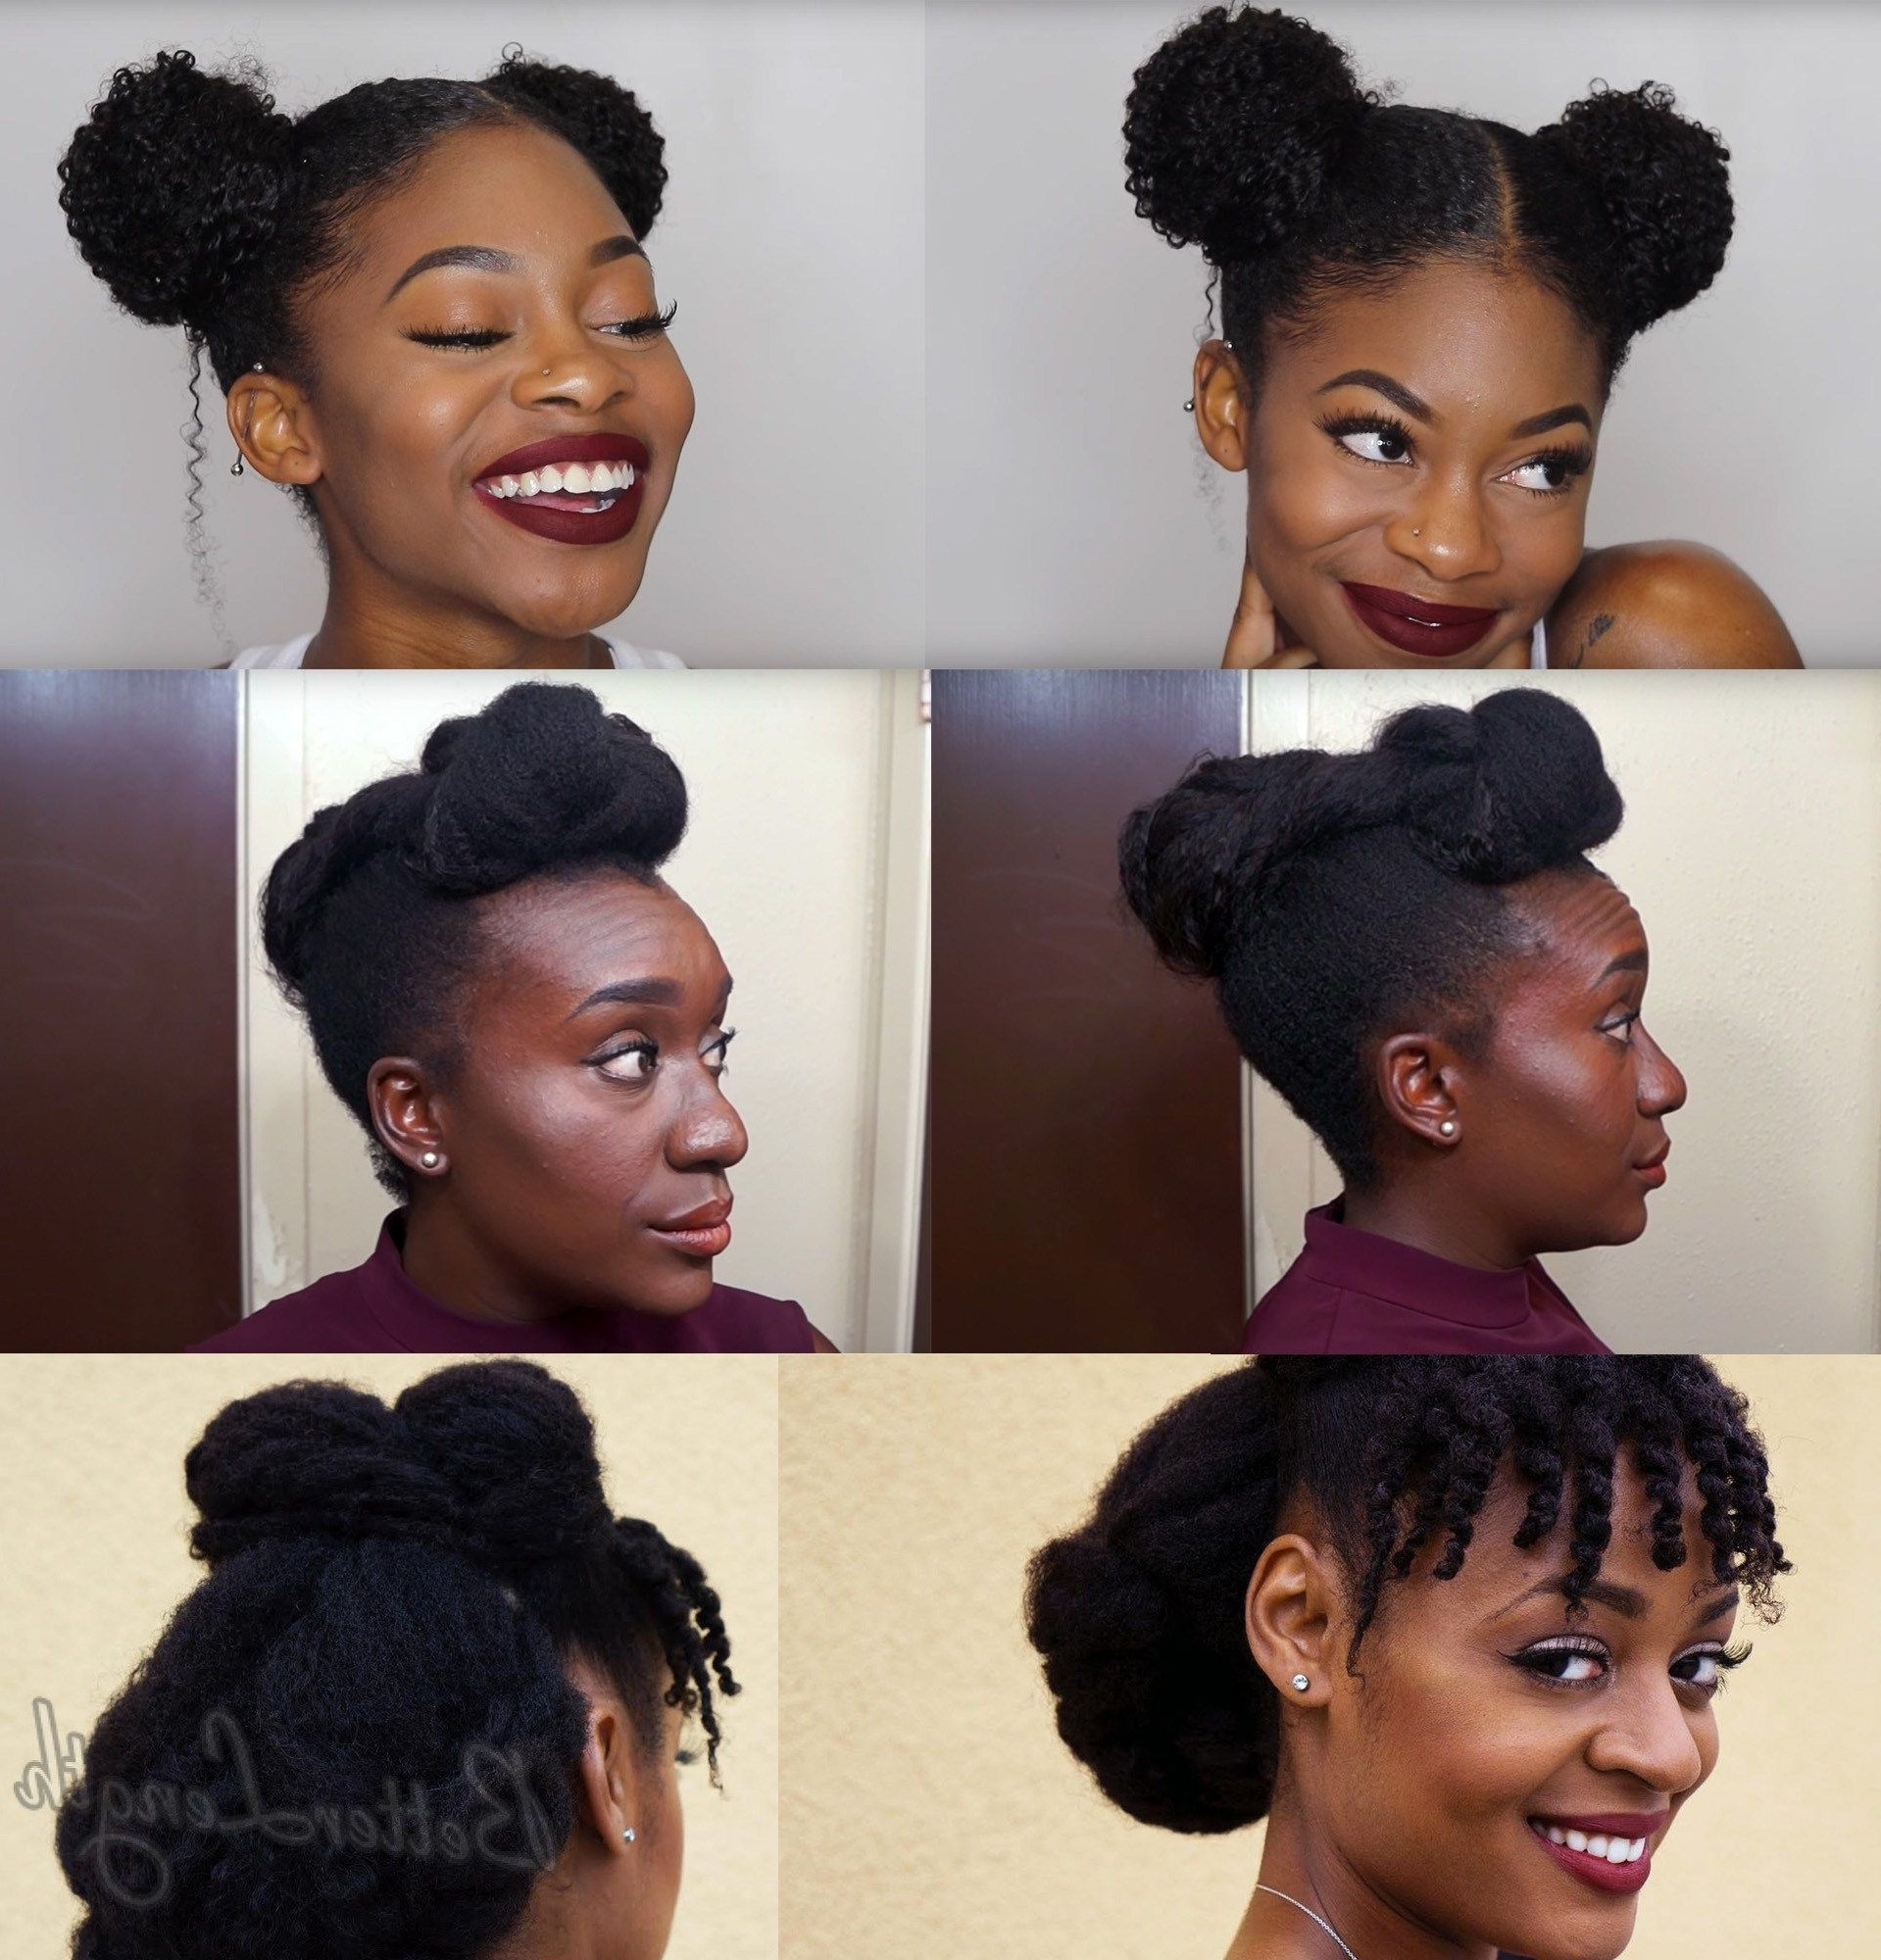 Fascinating Top Quick U Easy Natural Hair Updo Hairstyles Image Of Pertaining To Quick And Easy Updo Hairstyles For Black Hair (View 8 of 15)